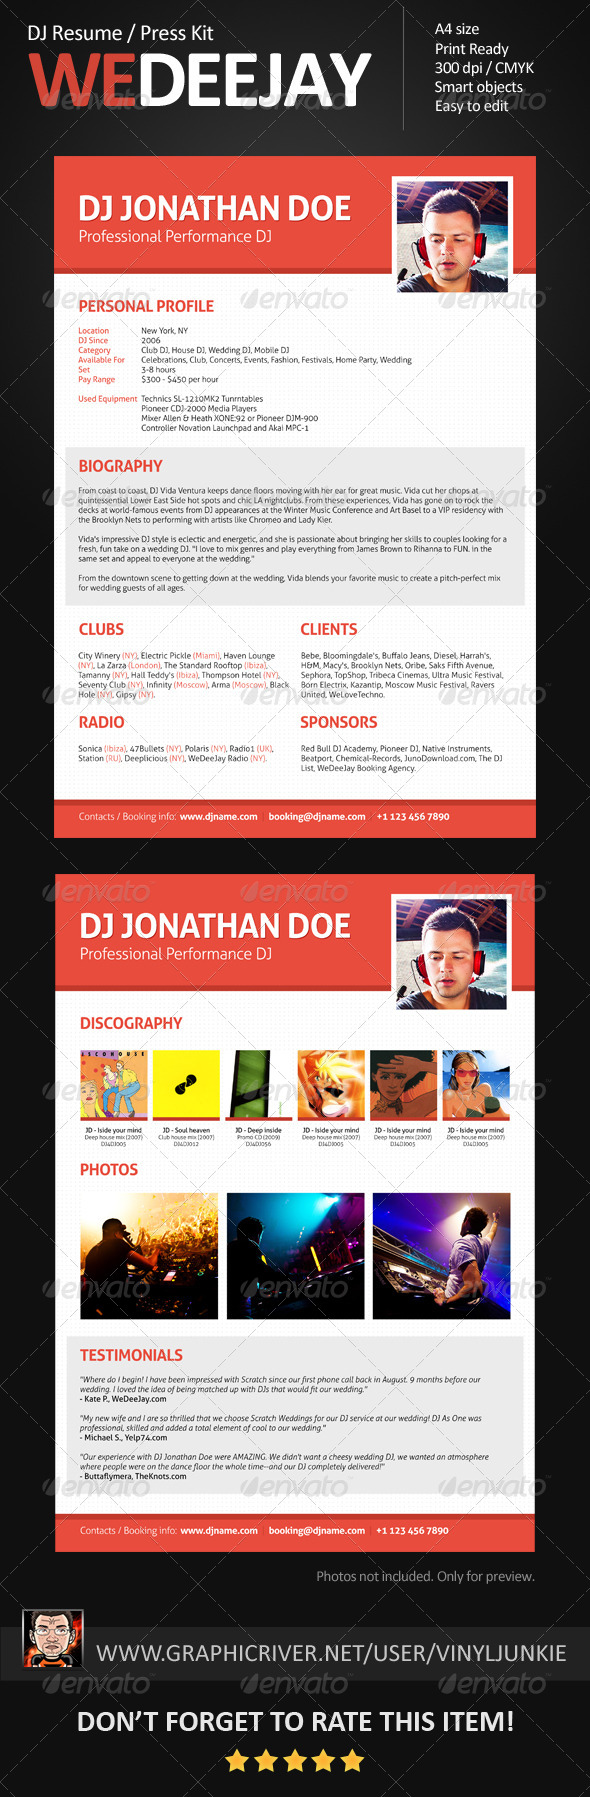 Dj Booking Graphics Designs Templates From Graphicriver